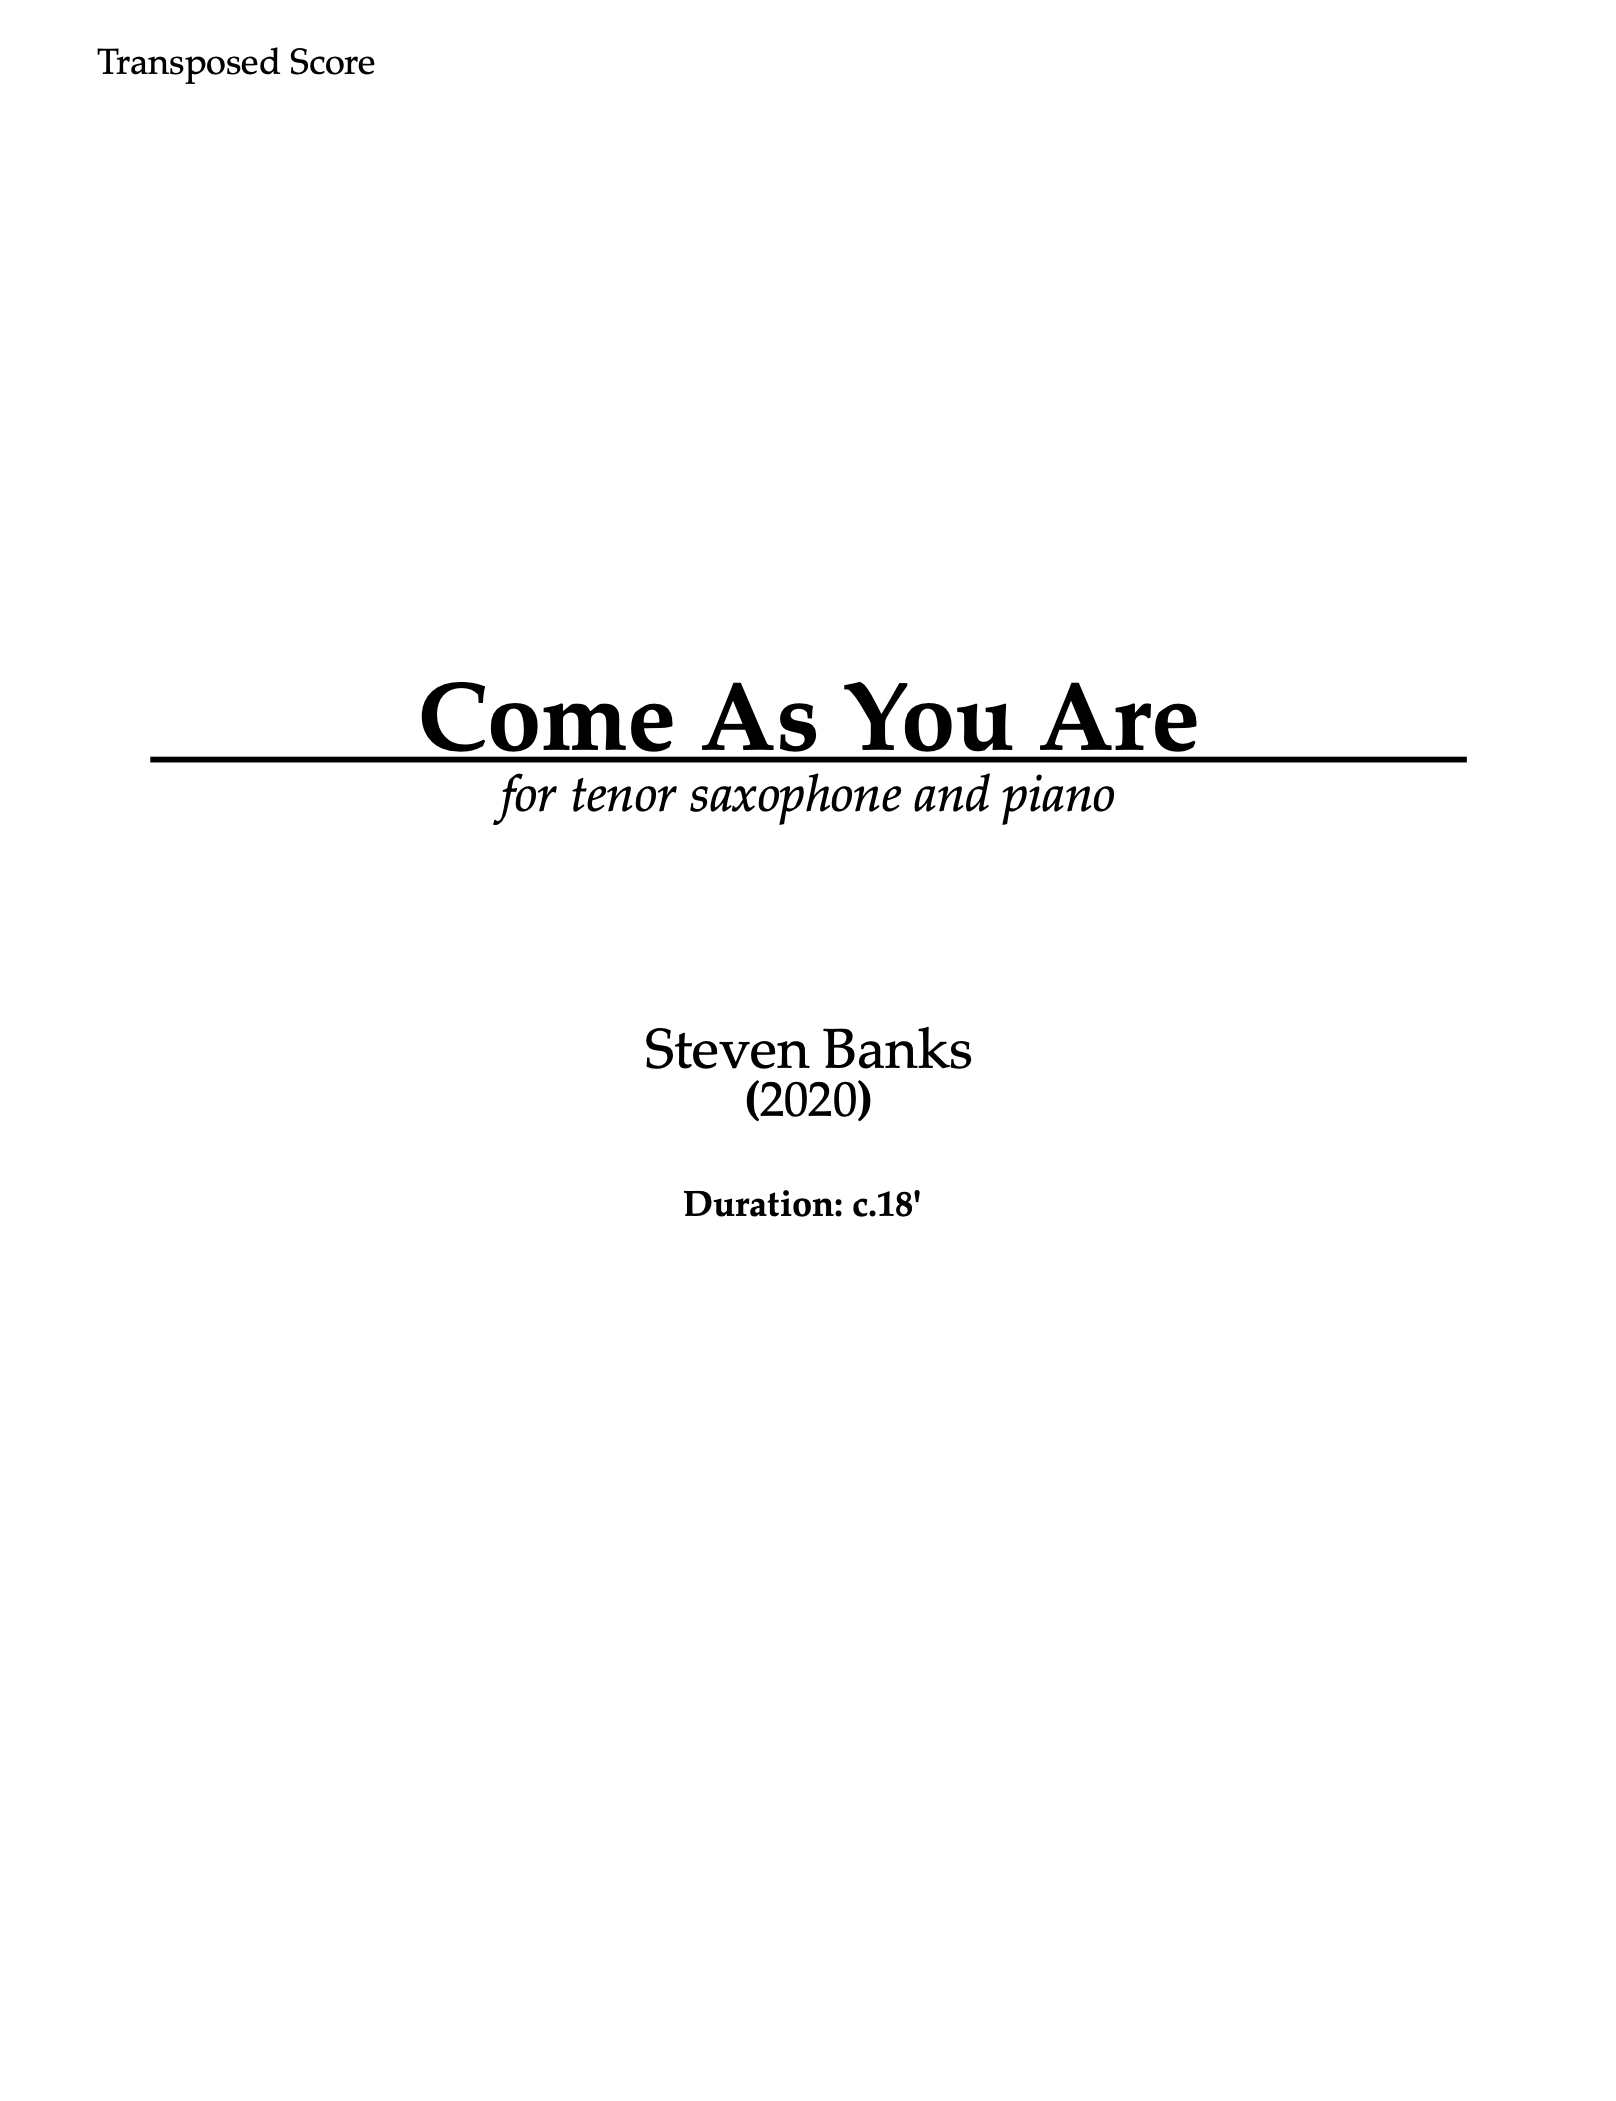 Come As You Are (PDF Version) by Steven Banks